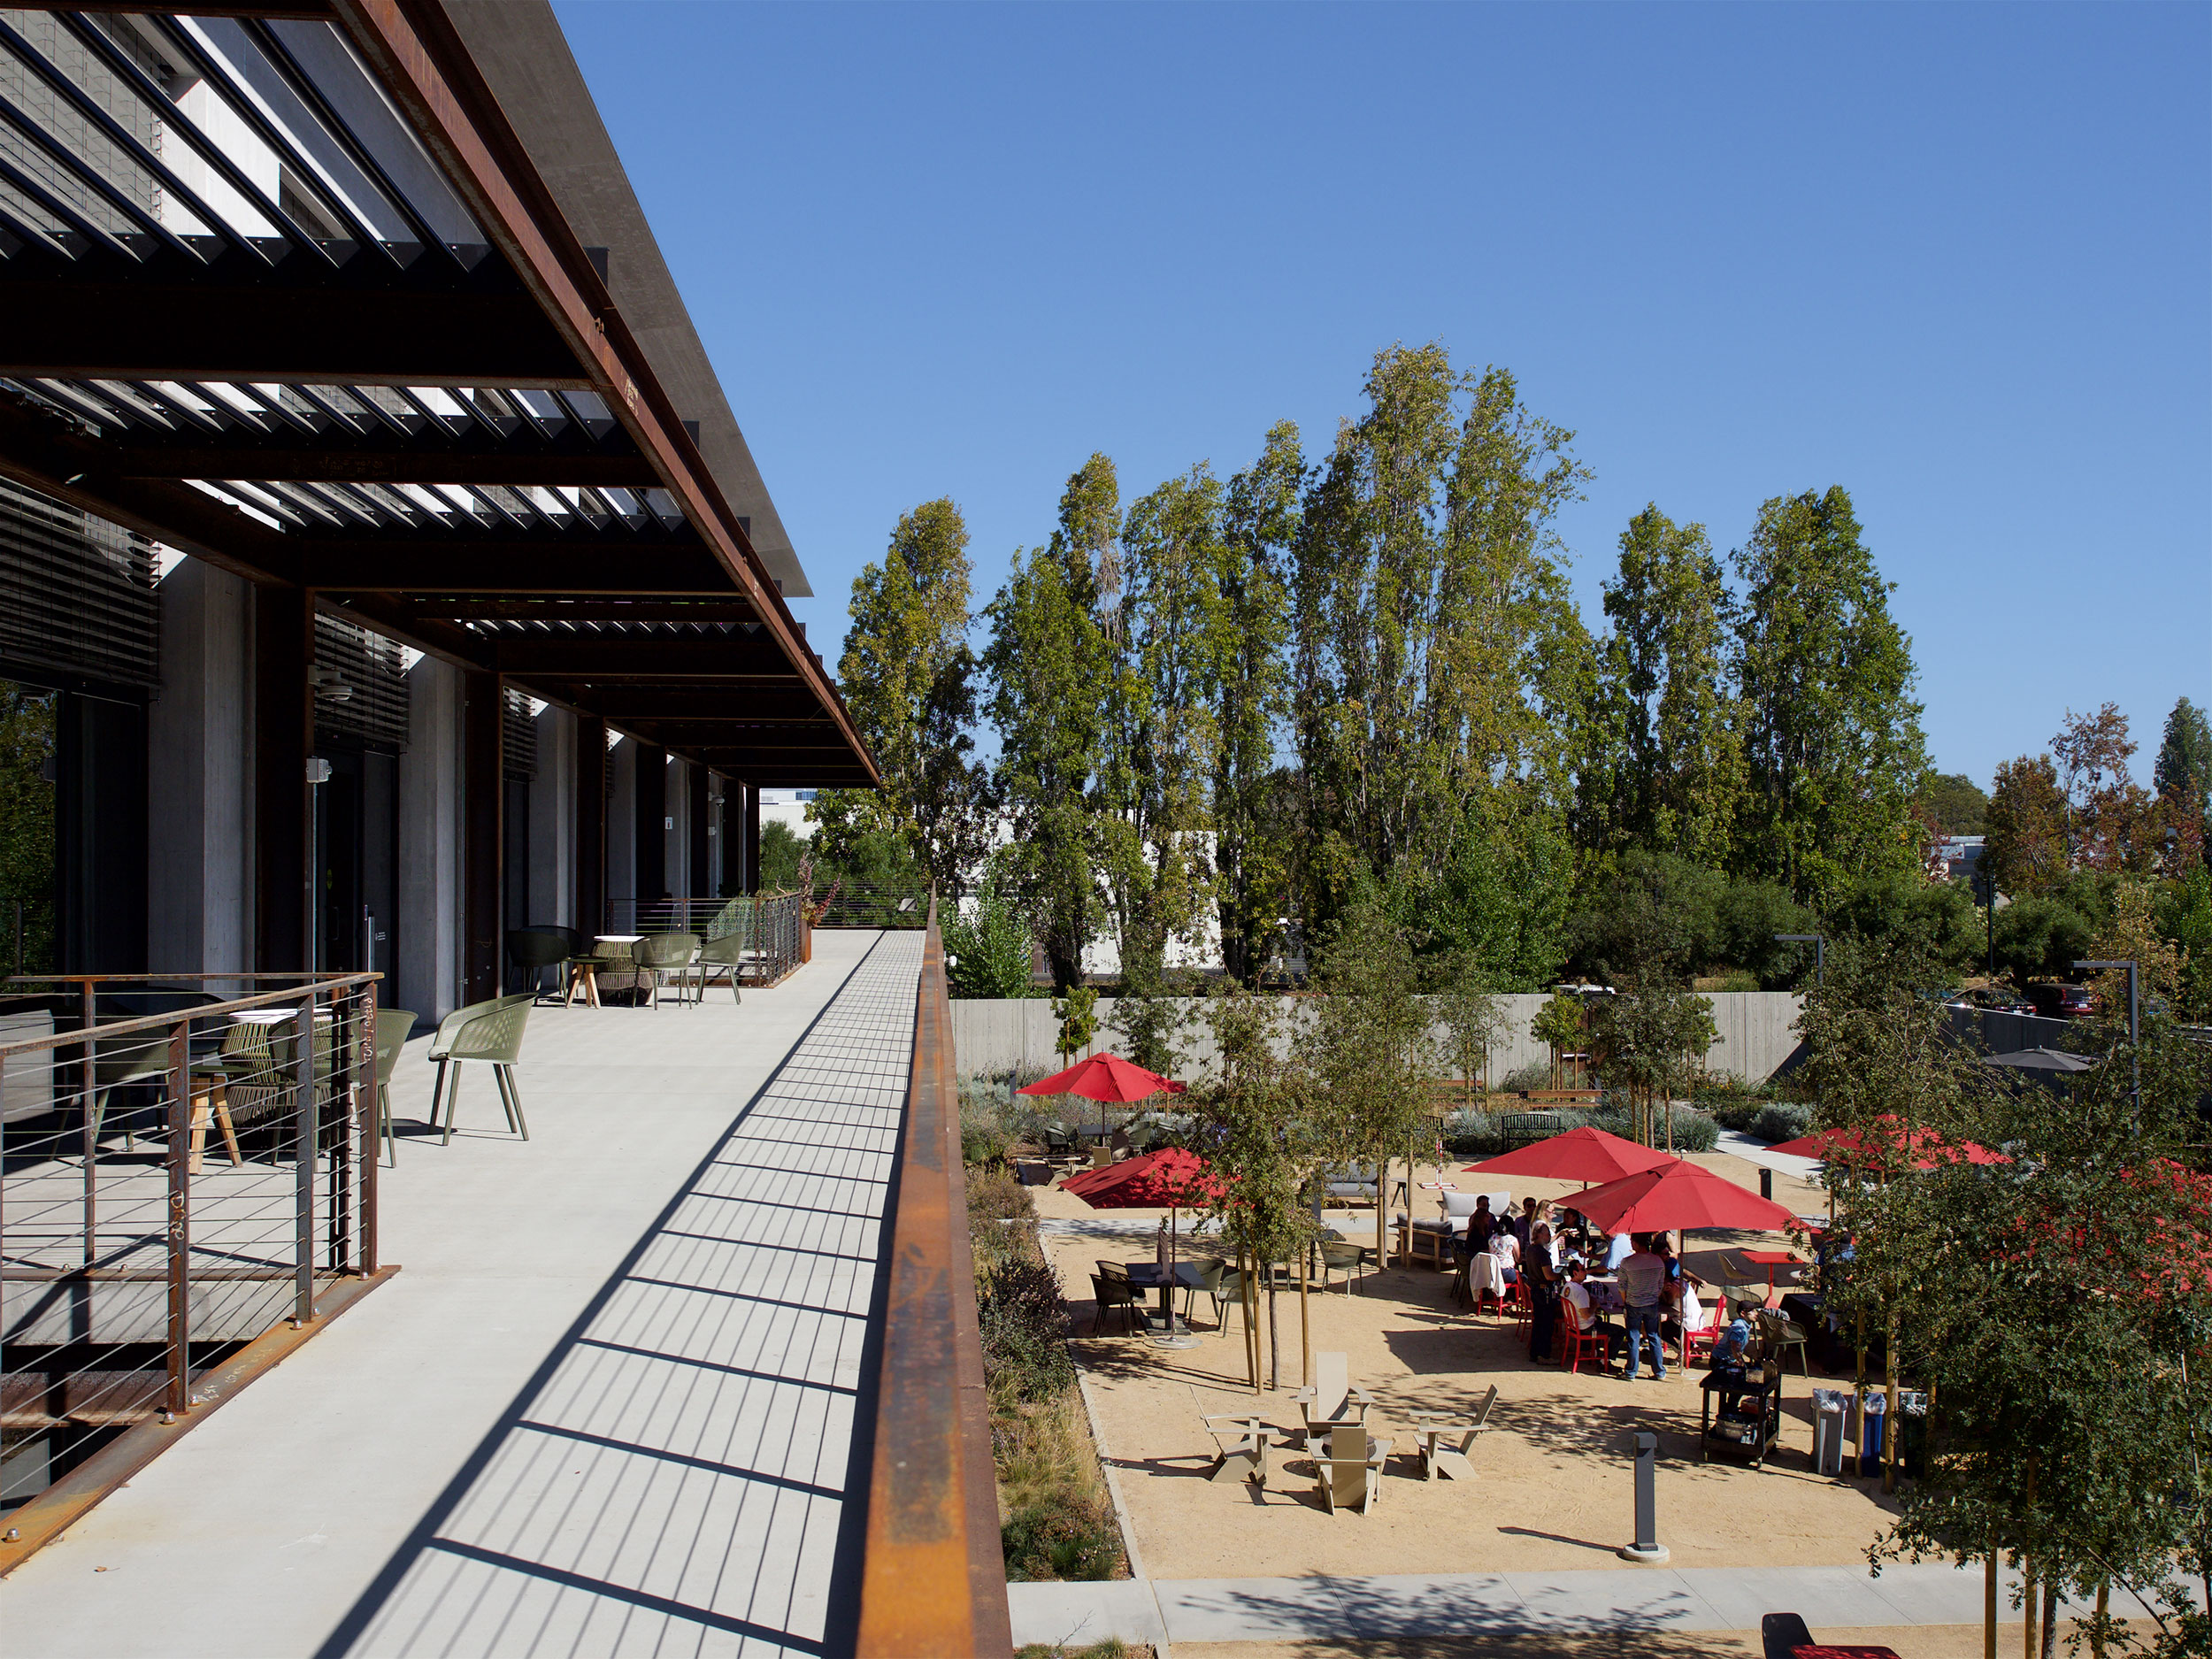 Google at 1212 Bordeaux, Garden, Courtyard, Terrace, Biophilia, Natural Habitat, Light, Gathering